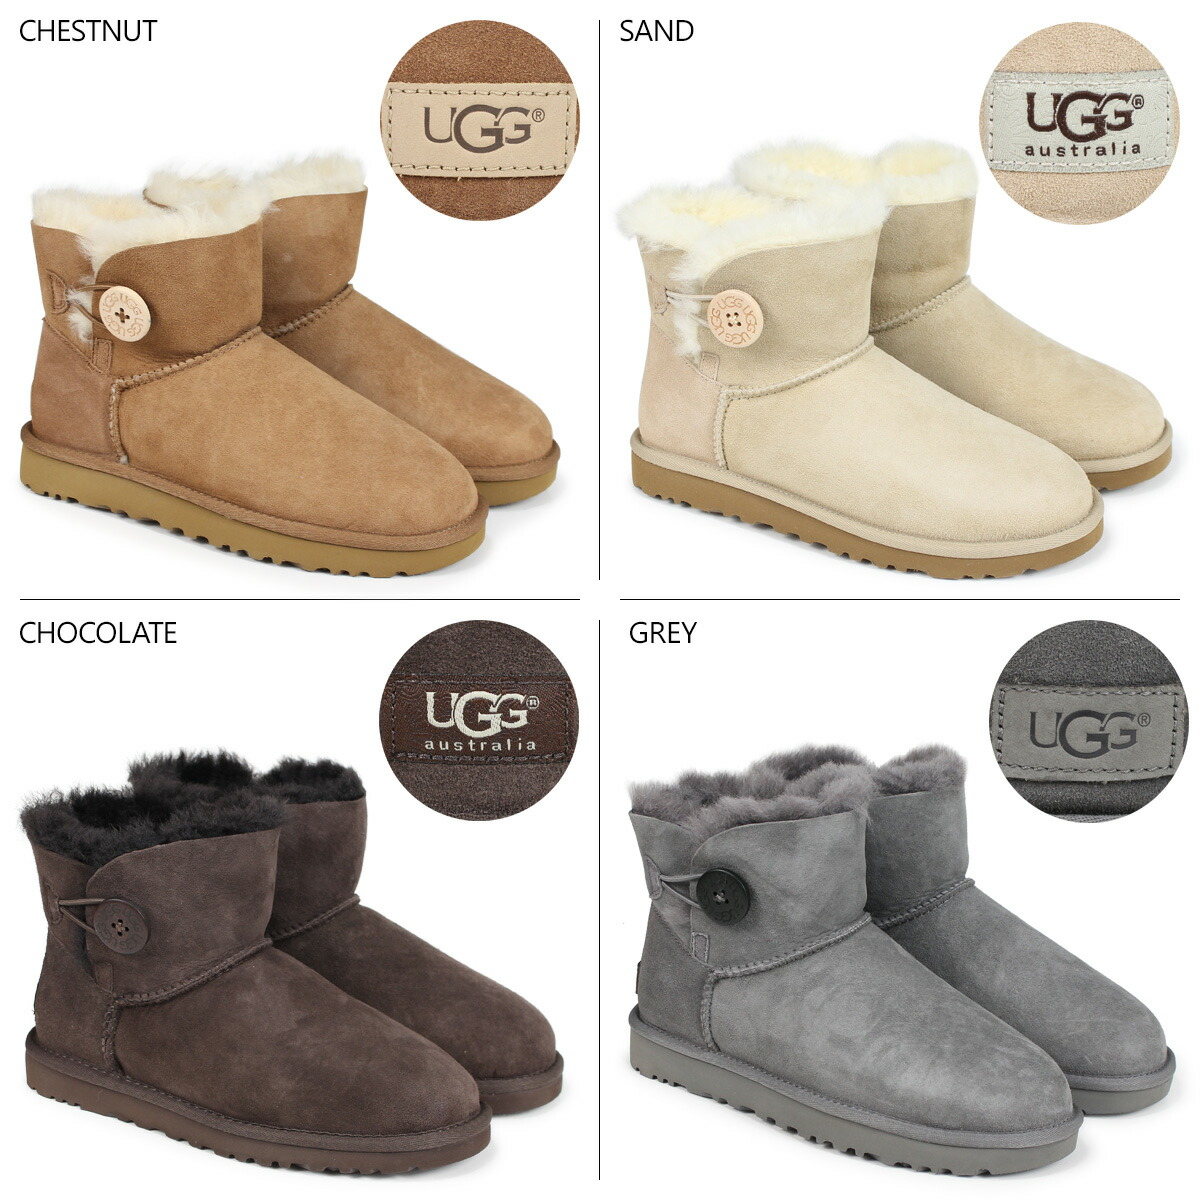 ugg boots 3352